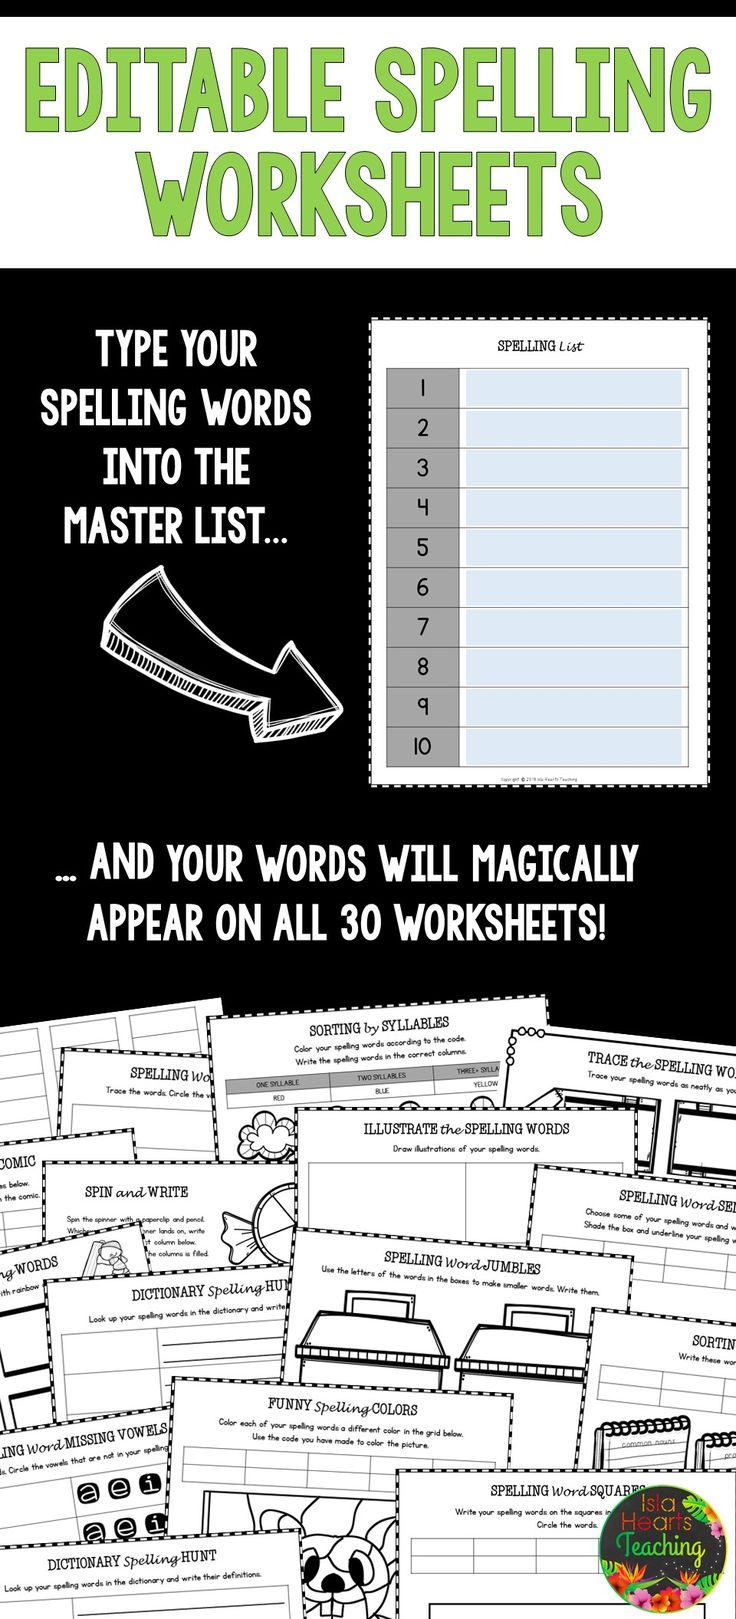 Free Worksheet Create Your Own Spelling Worksheets 17 best ideas about spelling worksheets on pinterest editable and activities for any 10 word list